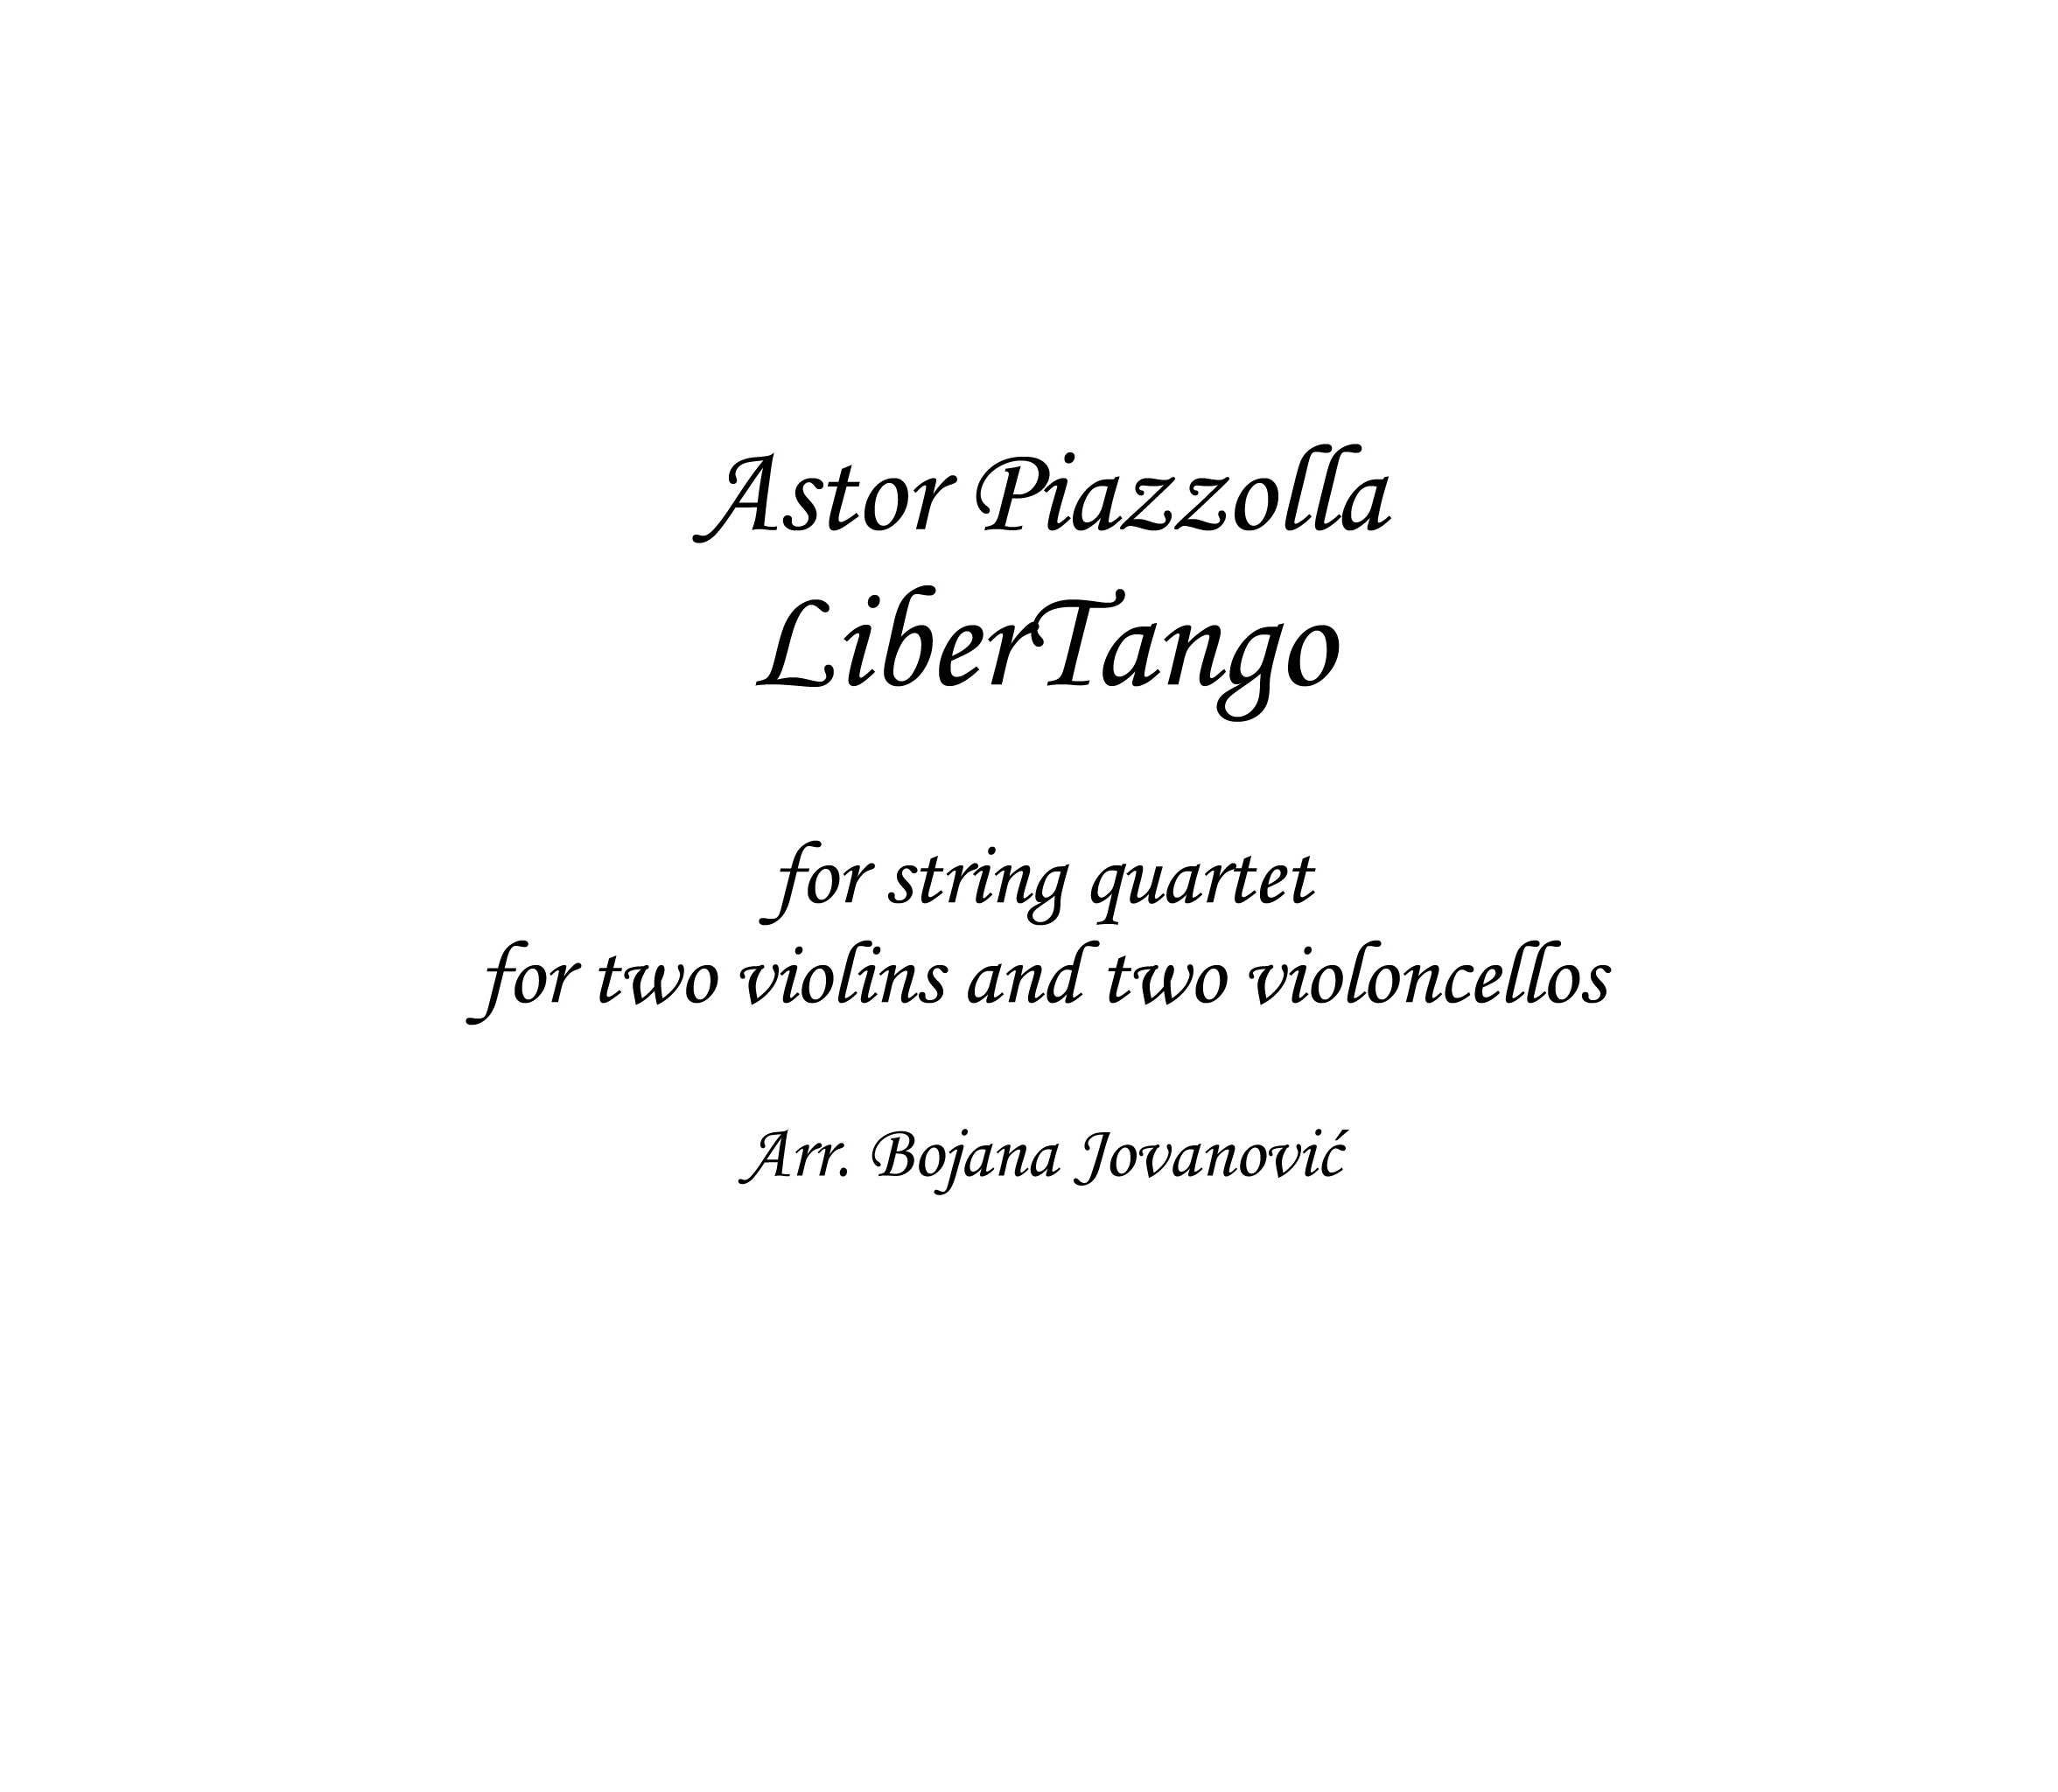 Libertango pdf string quartet instrument